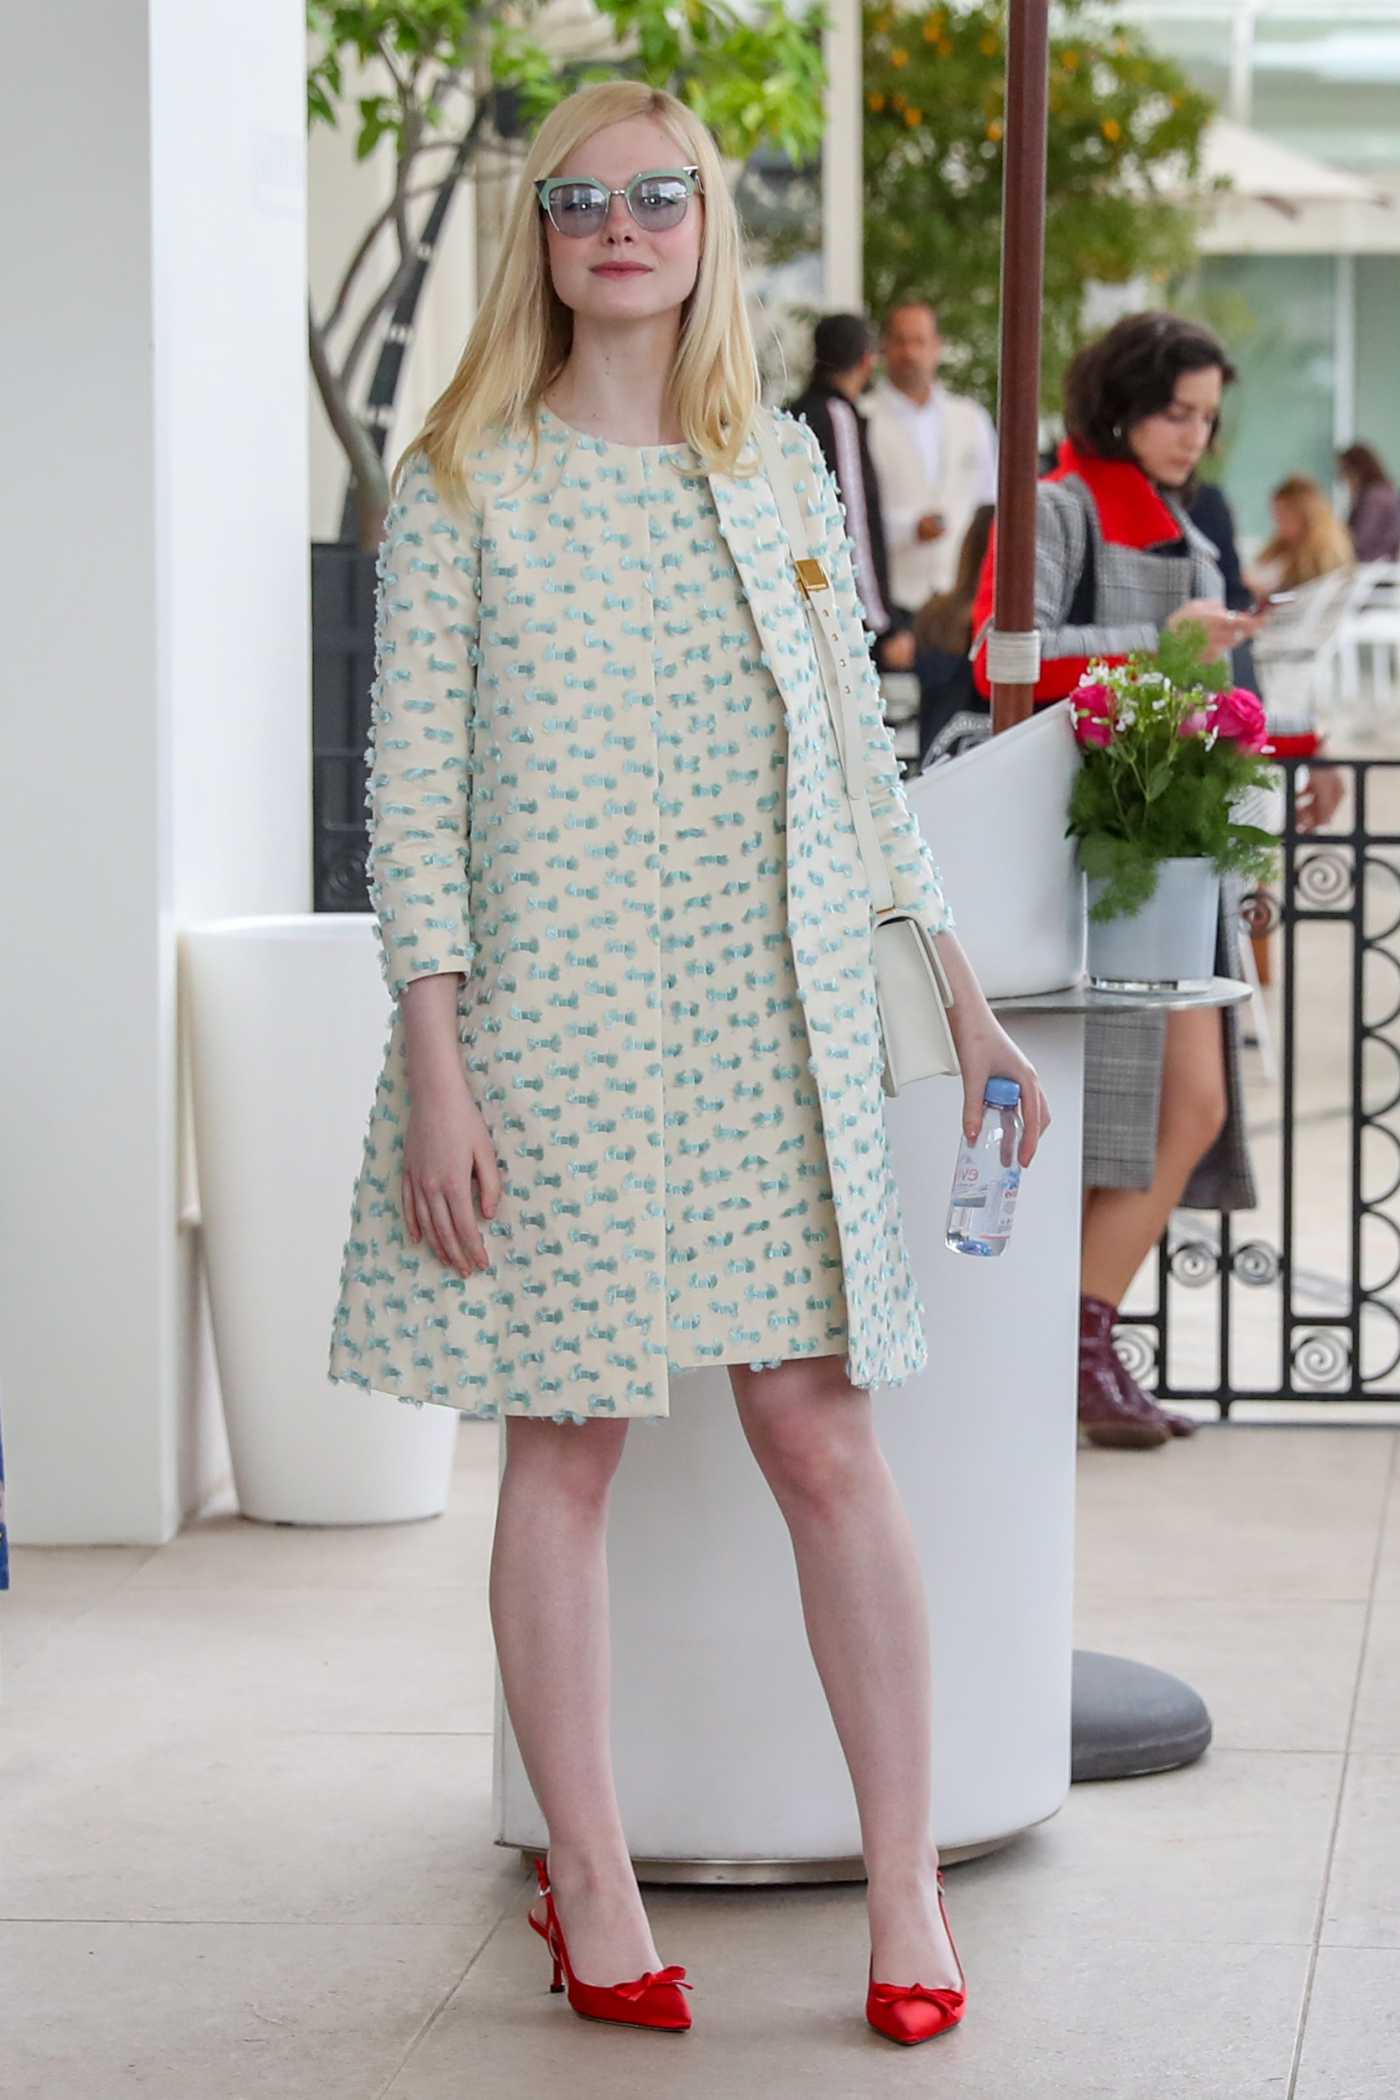 Elle Fanning Arrives at the Martinez Hotel During the 72nd Annual Cannes Film Festival in Cannes 05/21/2019